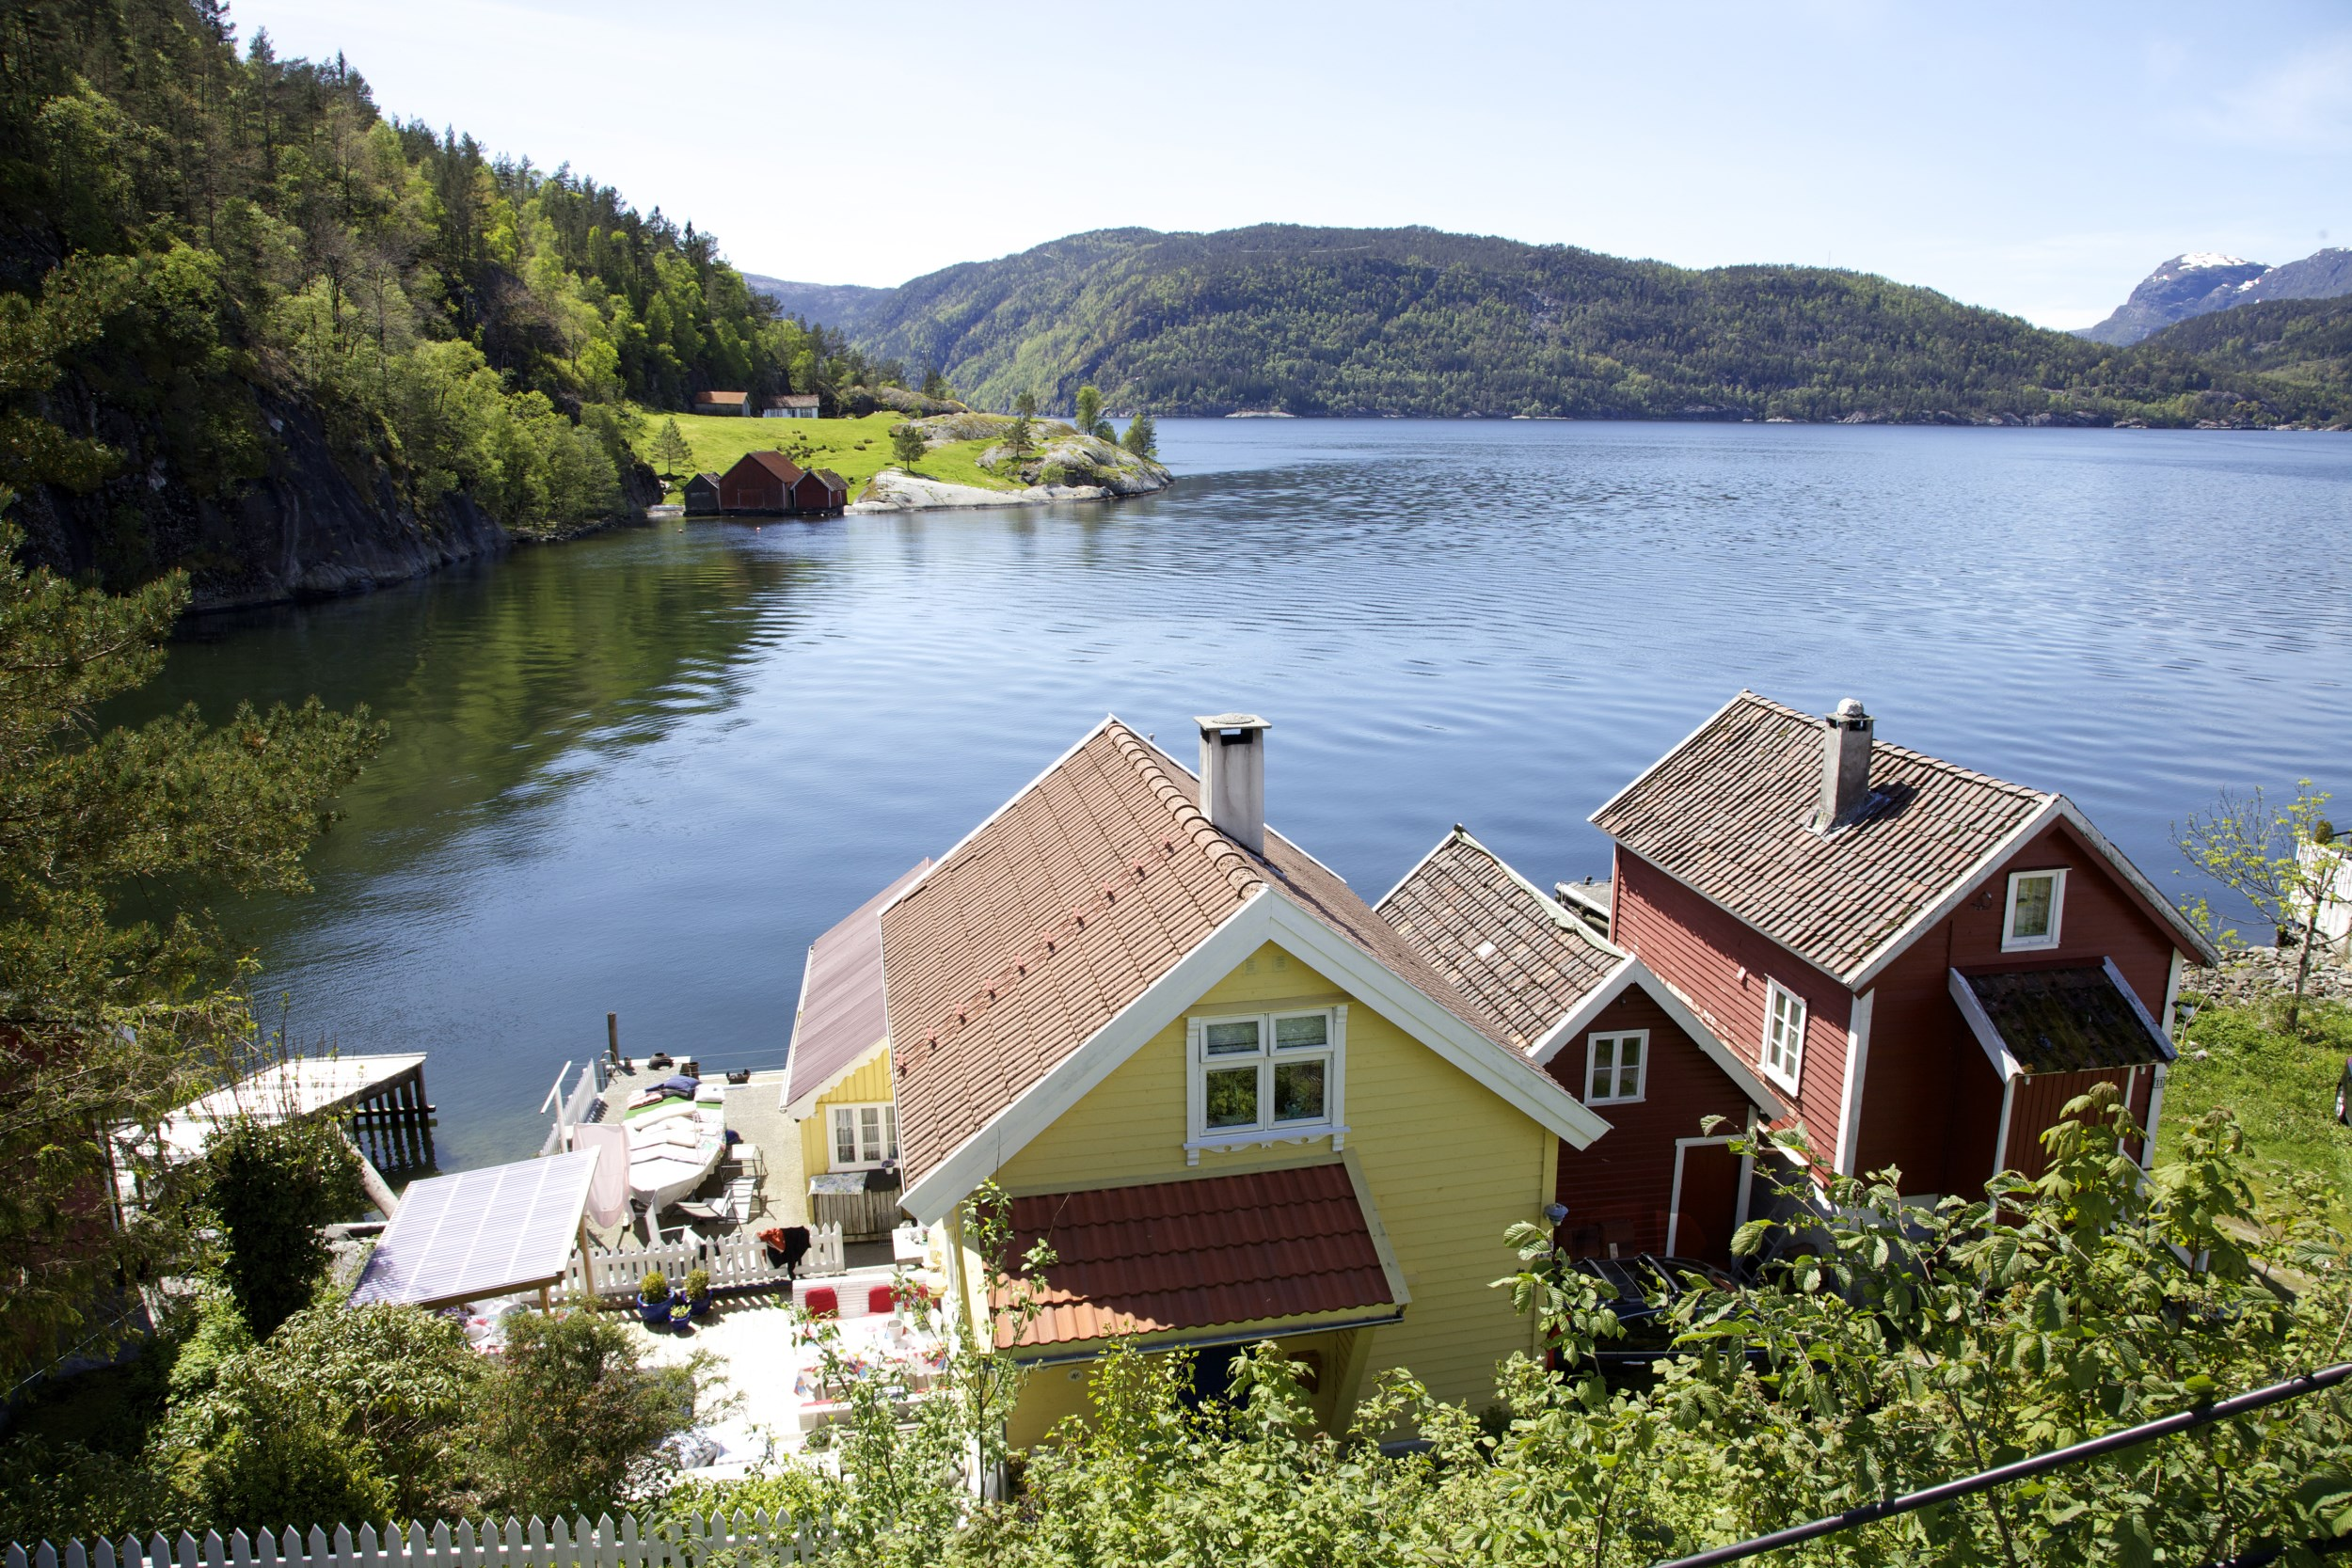 Picture of the fjordside village of Sand